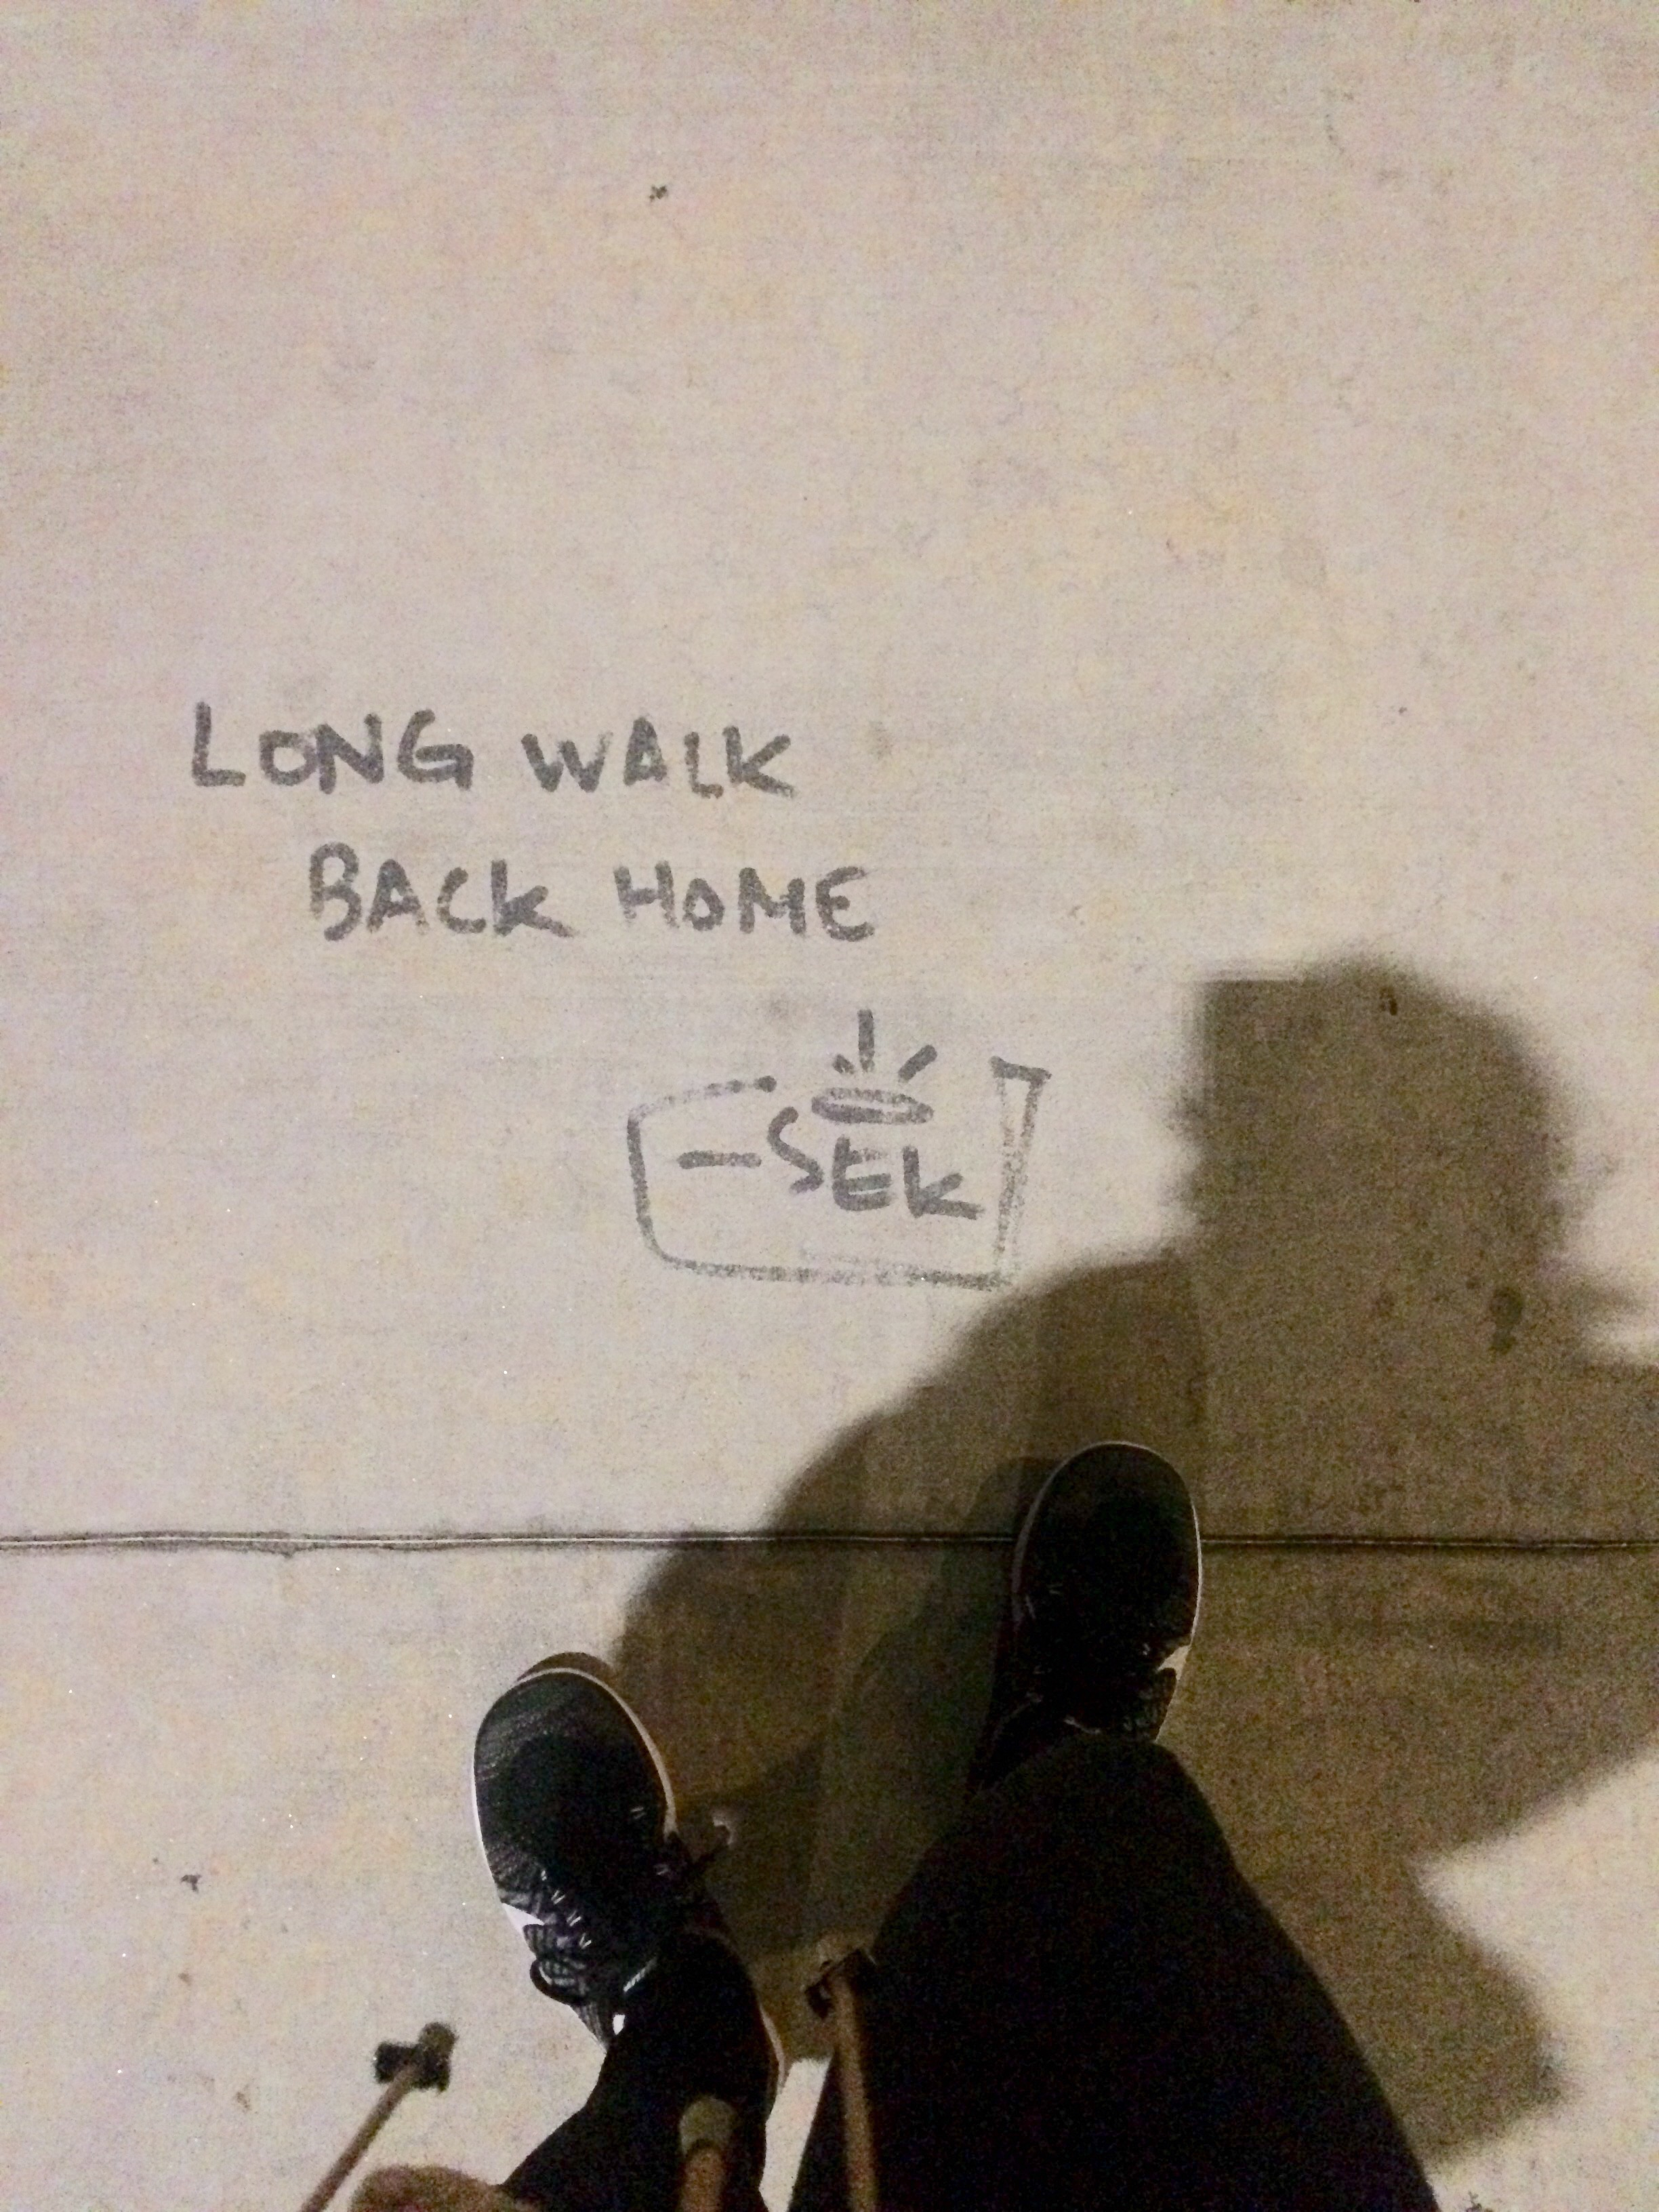 Sometimes it feels like it's going to be a long walk home